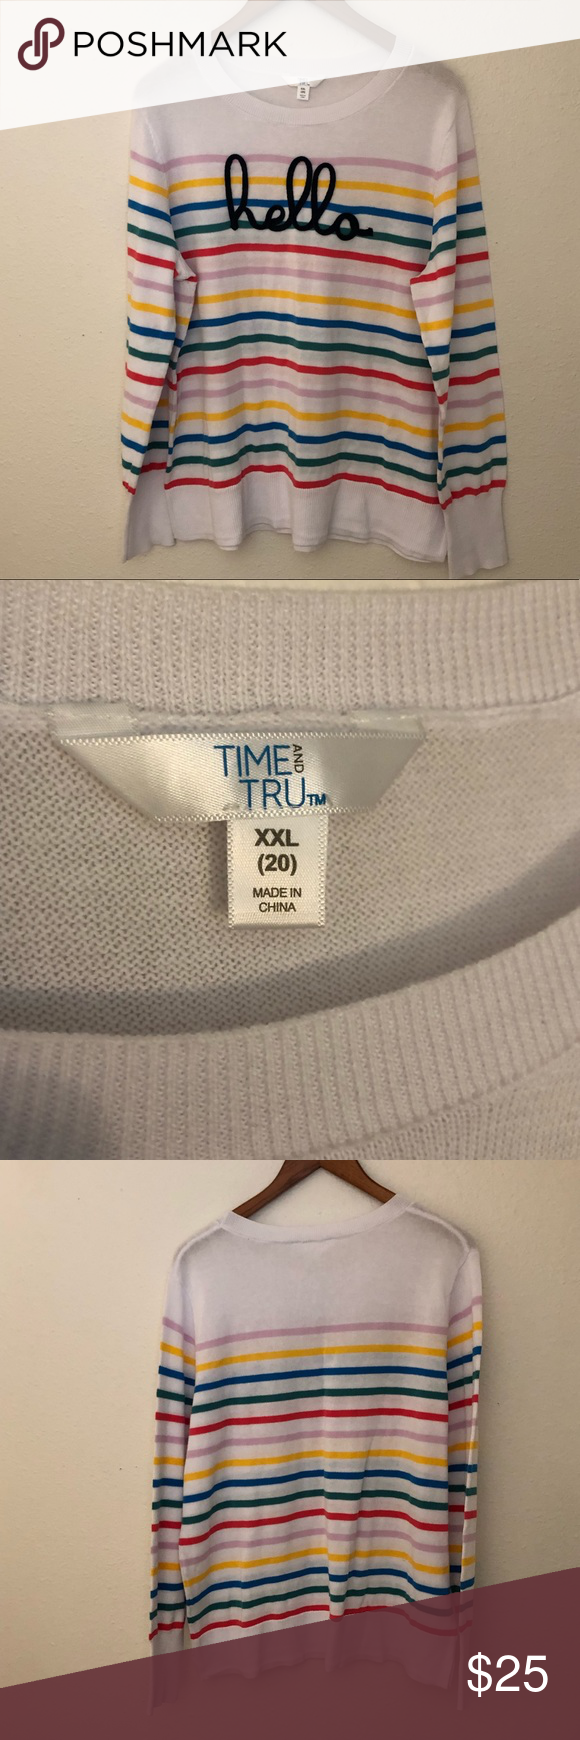 Time & Tru Hello Striped Sweater XL White NWOT Time & Tru Hello Sweater Spring '19 blogger fave XXL New without tags White w/ stripes Time and Tru Sweaters Crew & Scoop Necks #wfaves Time & Tru Hello Striped Sweater XL White NWOT Time & Tru Hello Sweater Spring '19 blogger fave XXL New without tags White w/ stripes Time and Tru Sweaters Crew & Scoop Necks #wfaves